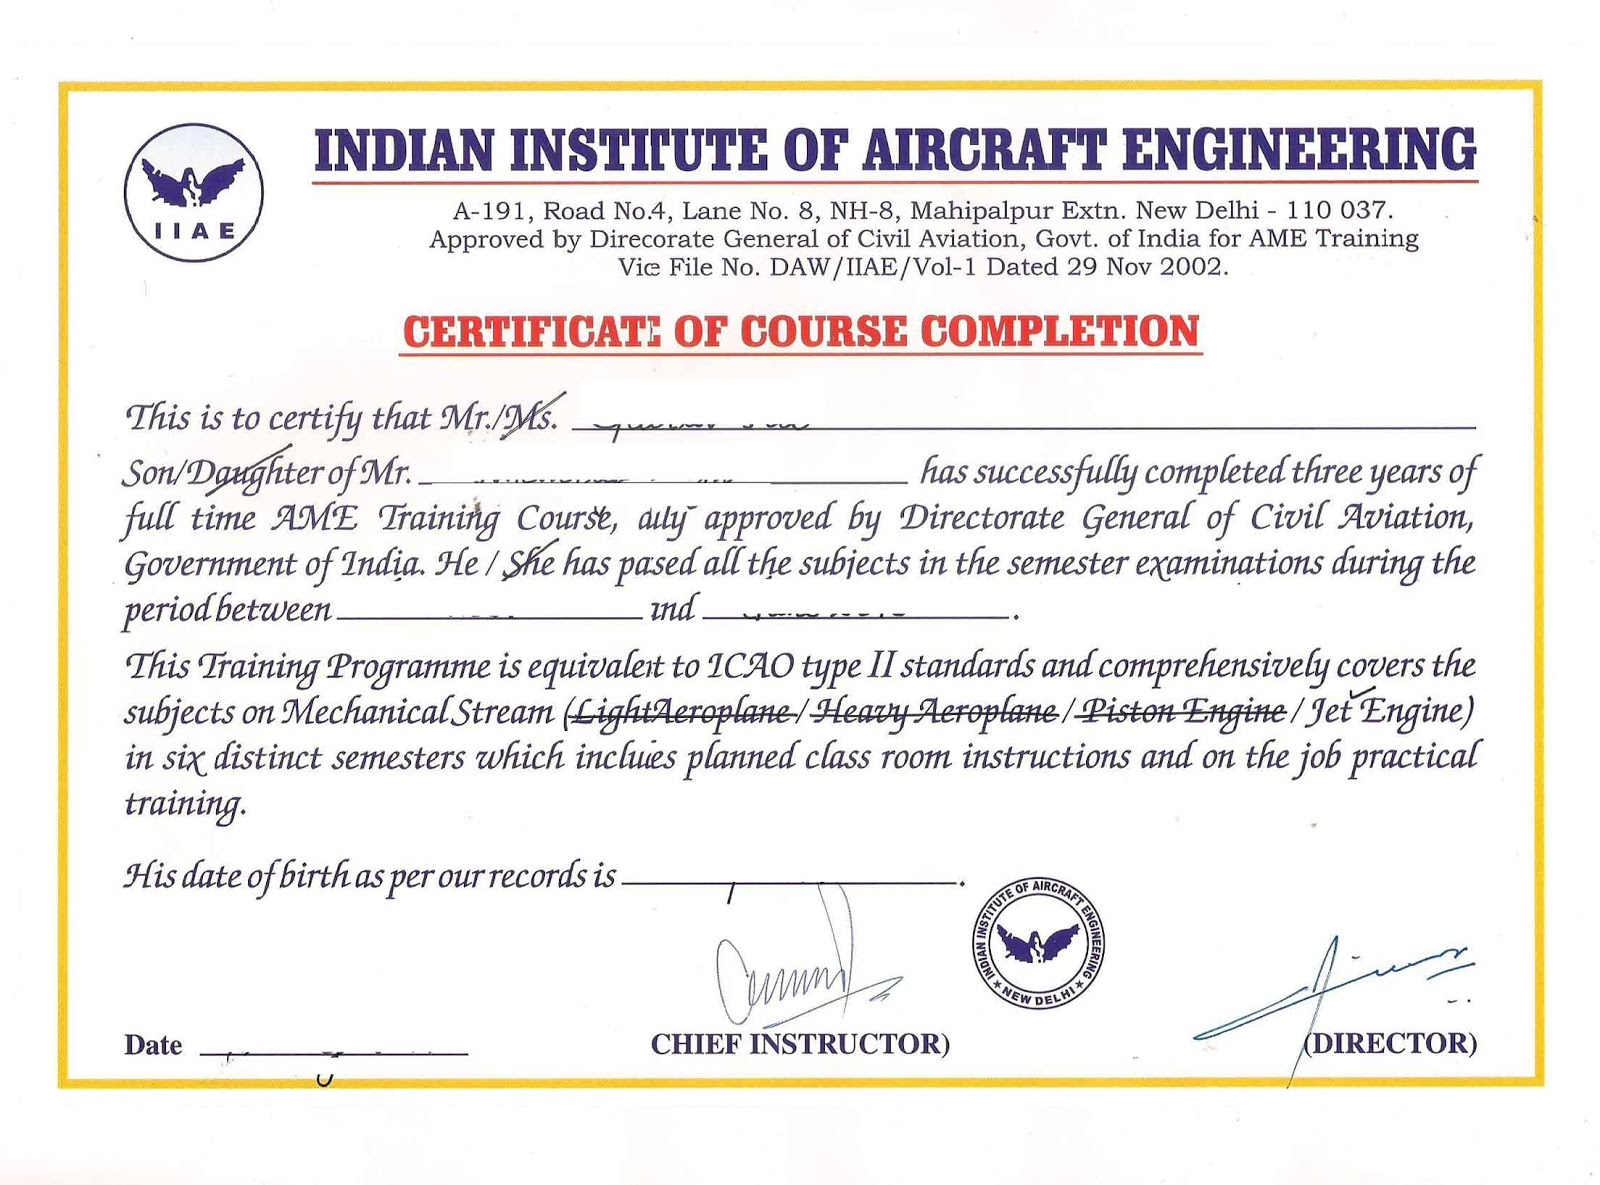 Certificate of course completion format acurnamedia certificate of course completion format ame certificate of course completion sample yelopaper Image collections